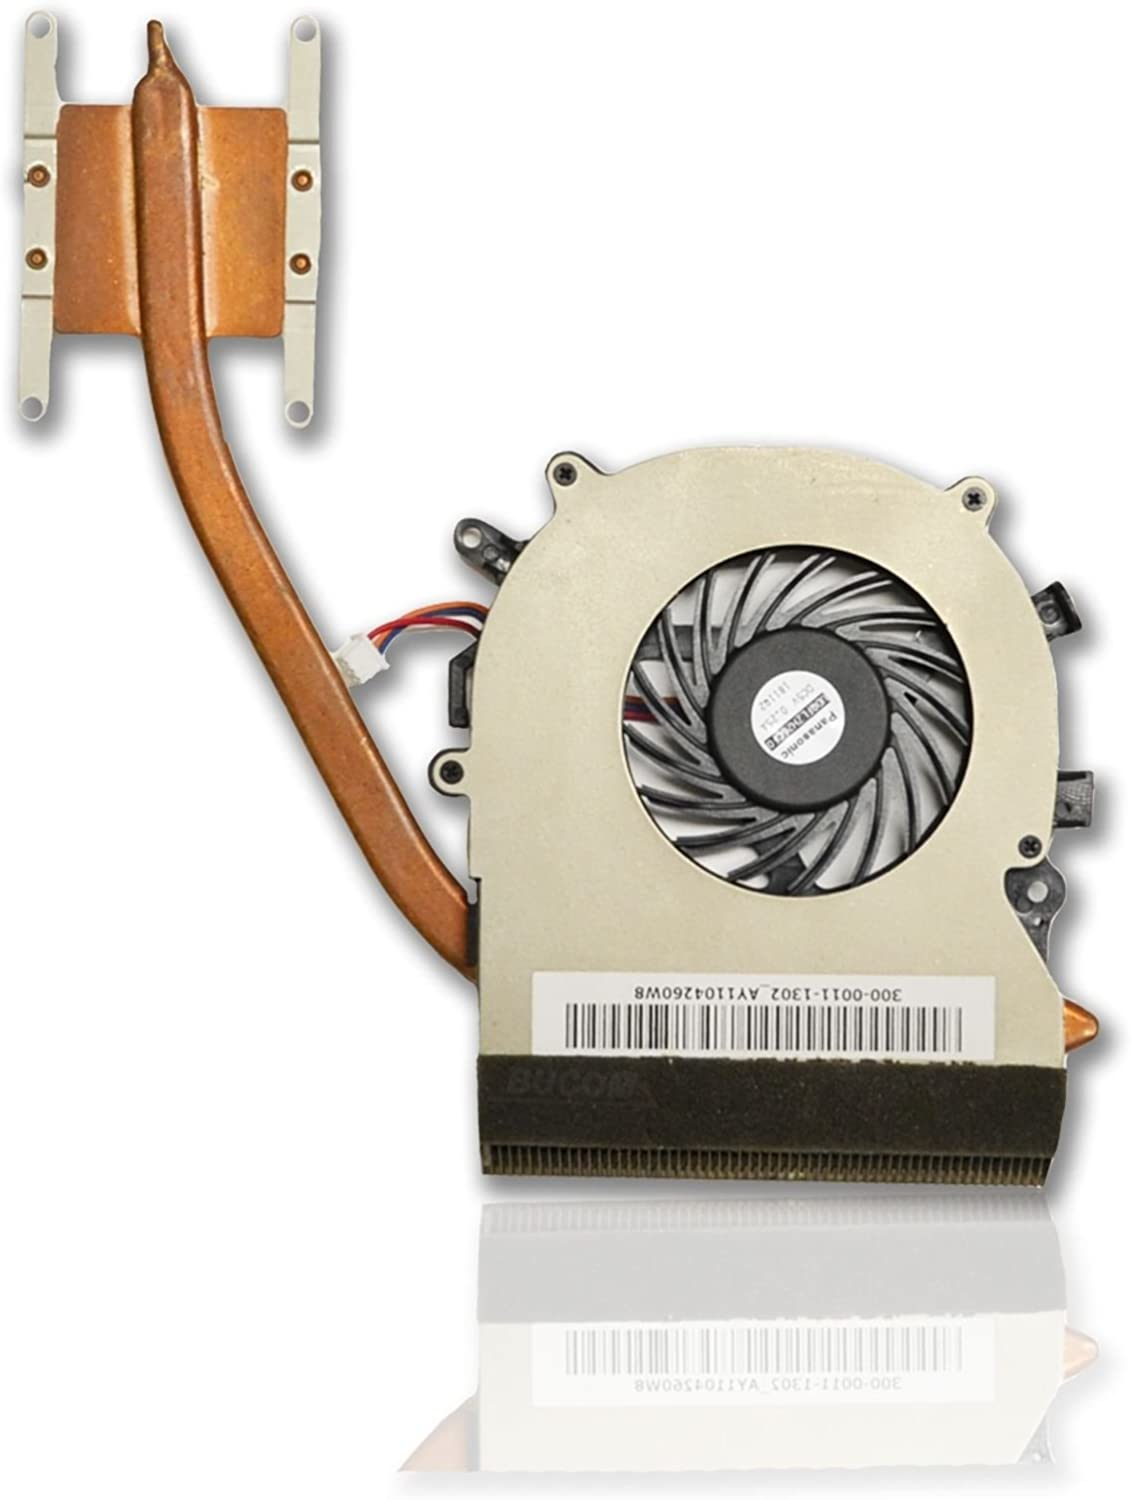 New Laptop CPU Cooling Fan with heatsink for Sony Vaio VPCEA1S1E VPC-EA VPC-EB Series